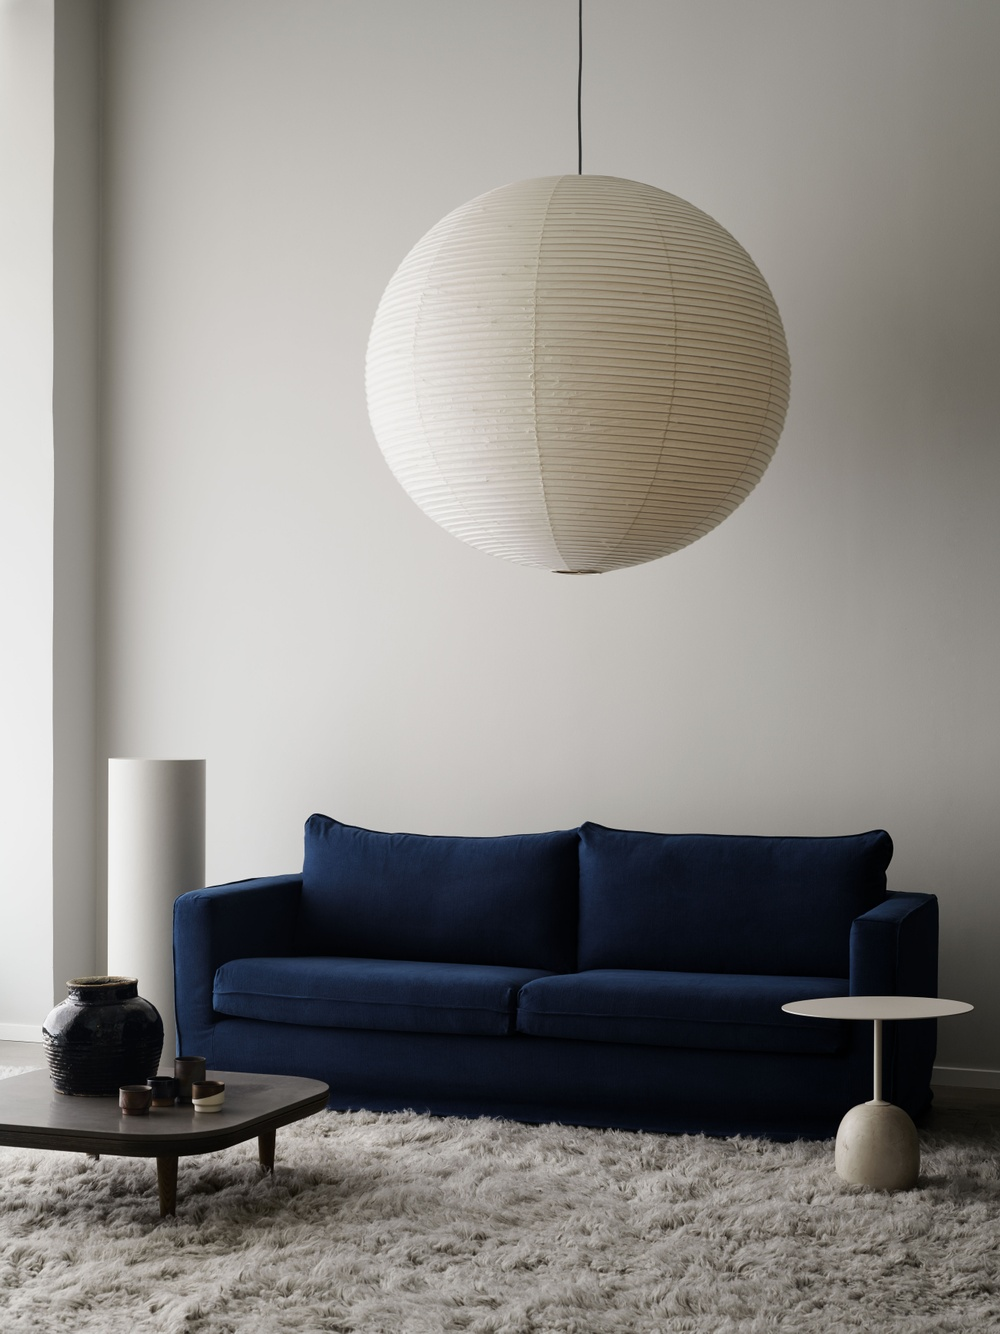 Bemz Loose Fit cover for IKEA Karlstad sofa, fabric: Simply Linen Navy Blue. Styling: Annaleena Leino. Photography: Kristofer Johnsson